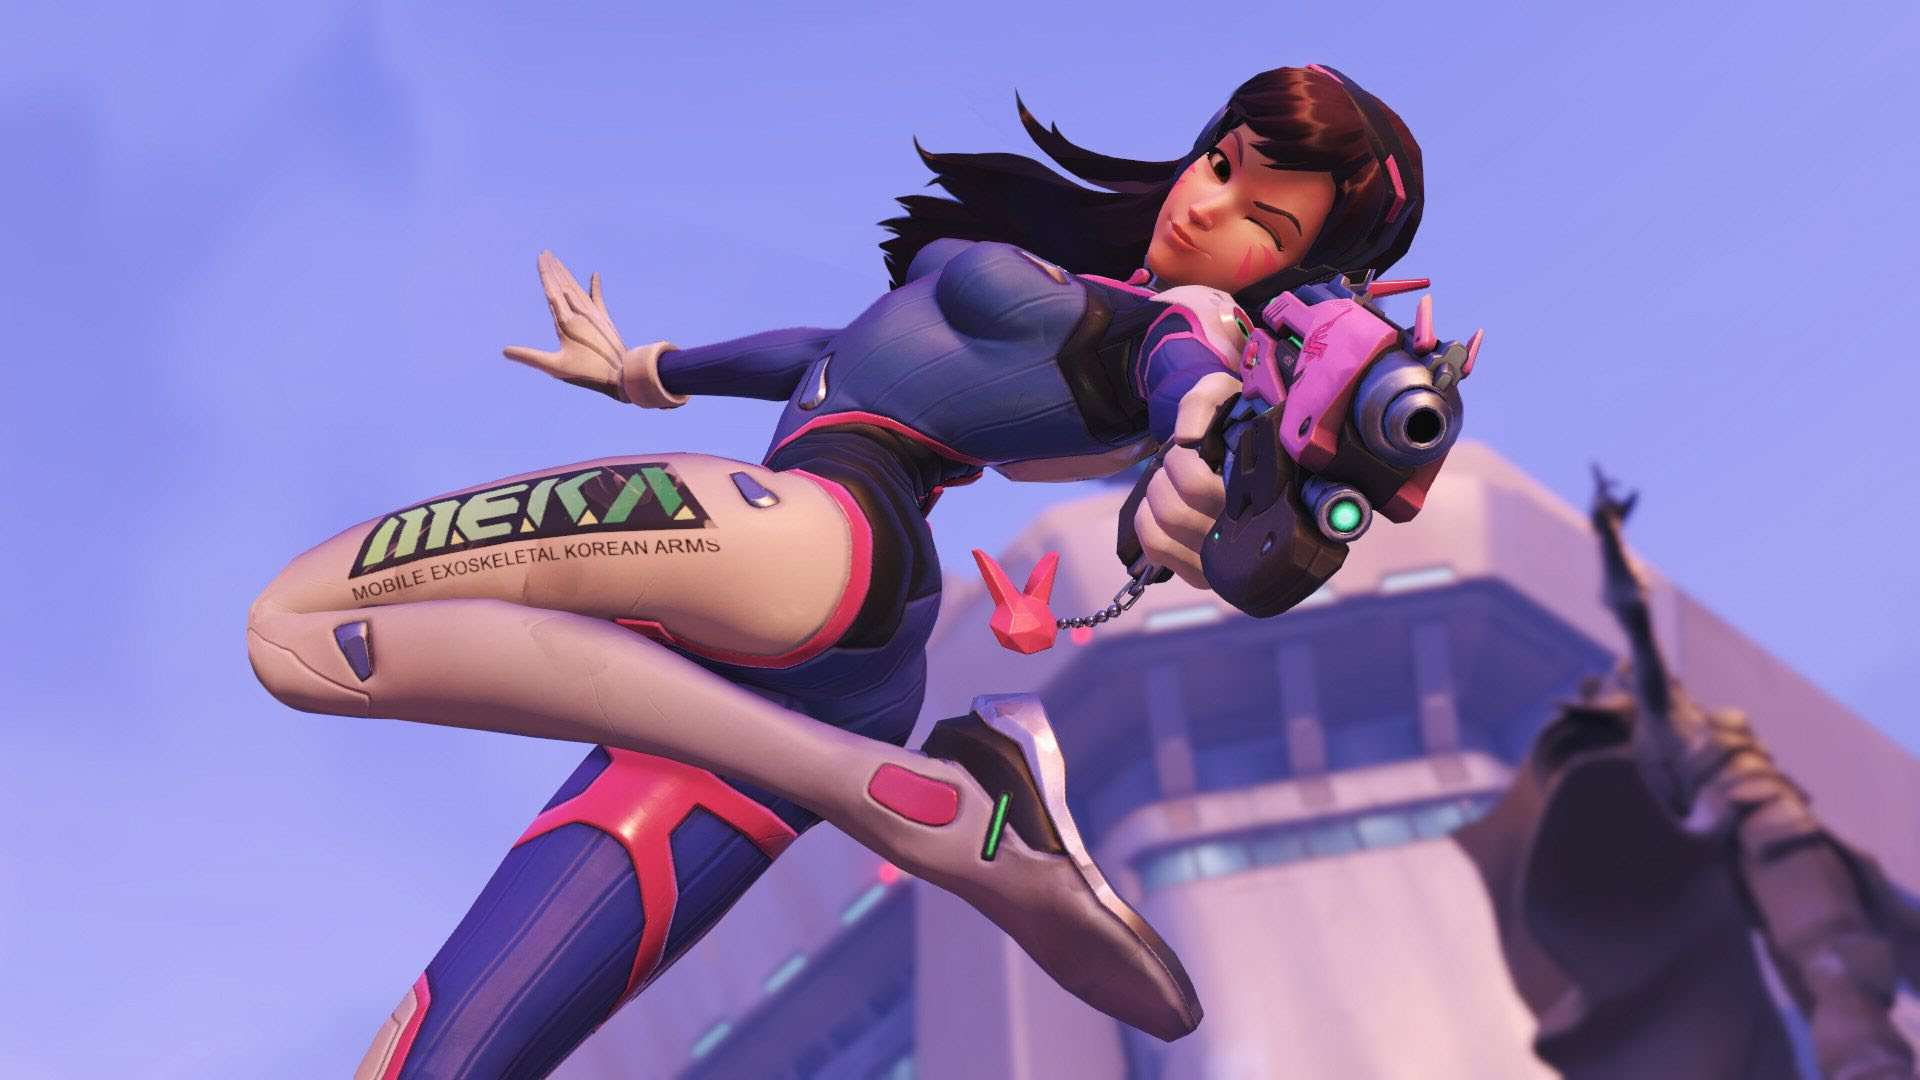 Blizzard Planning To Nerf Key Overwatch Character maxresdefault 2 3